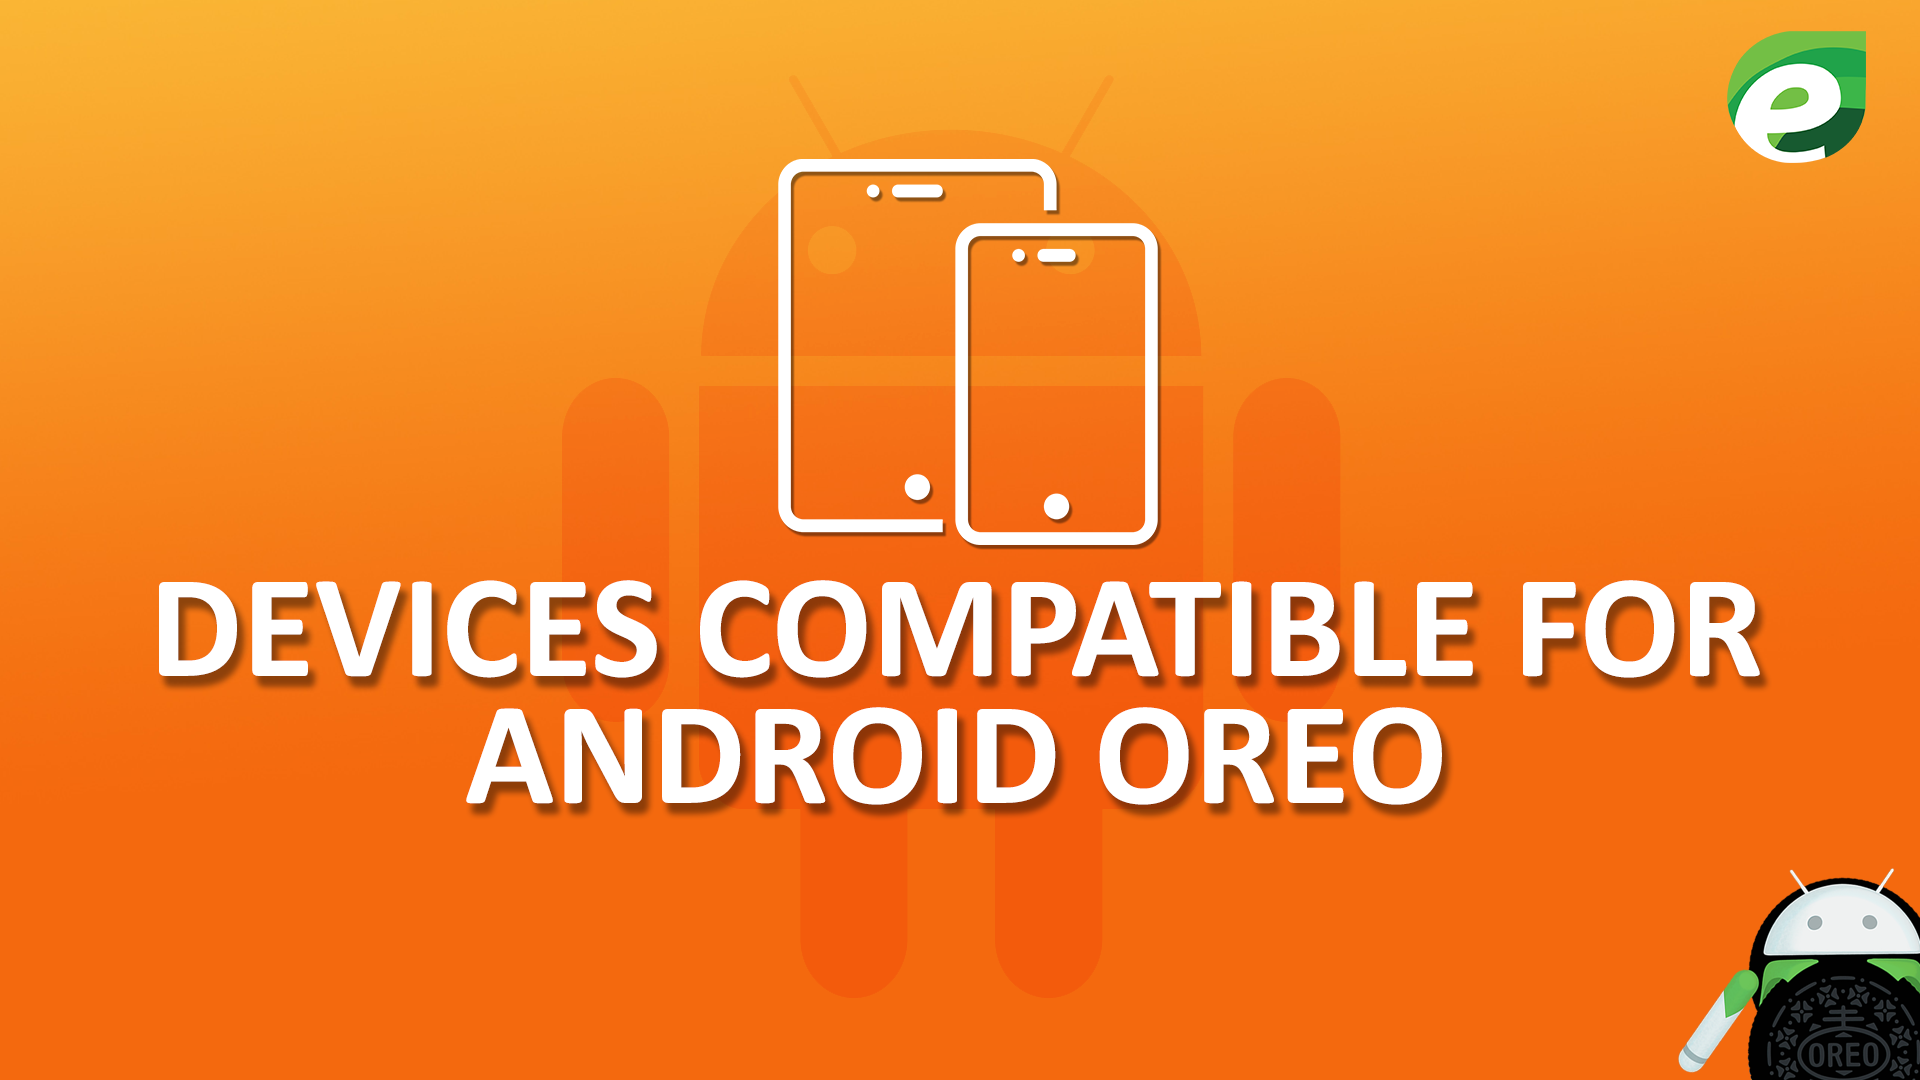 Android oreo- devices compatible